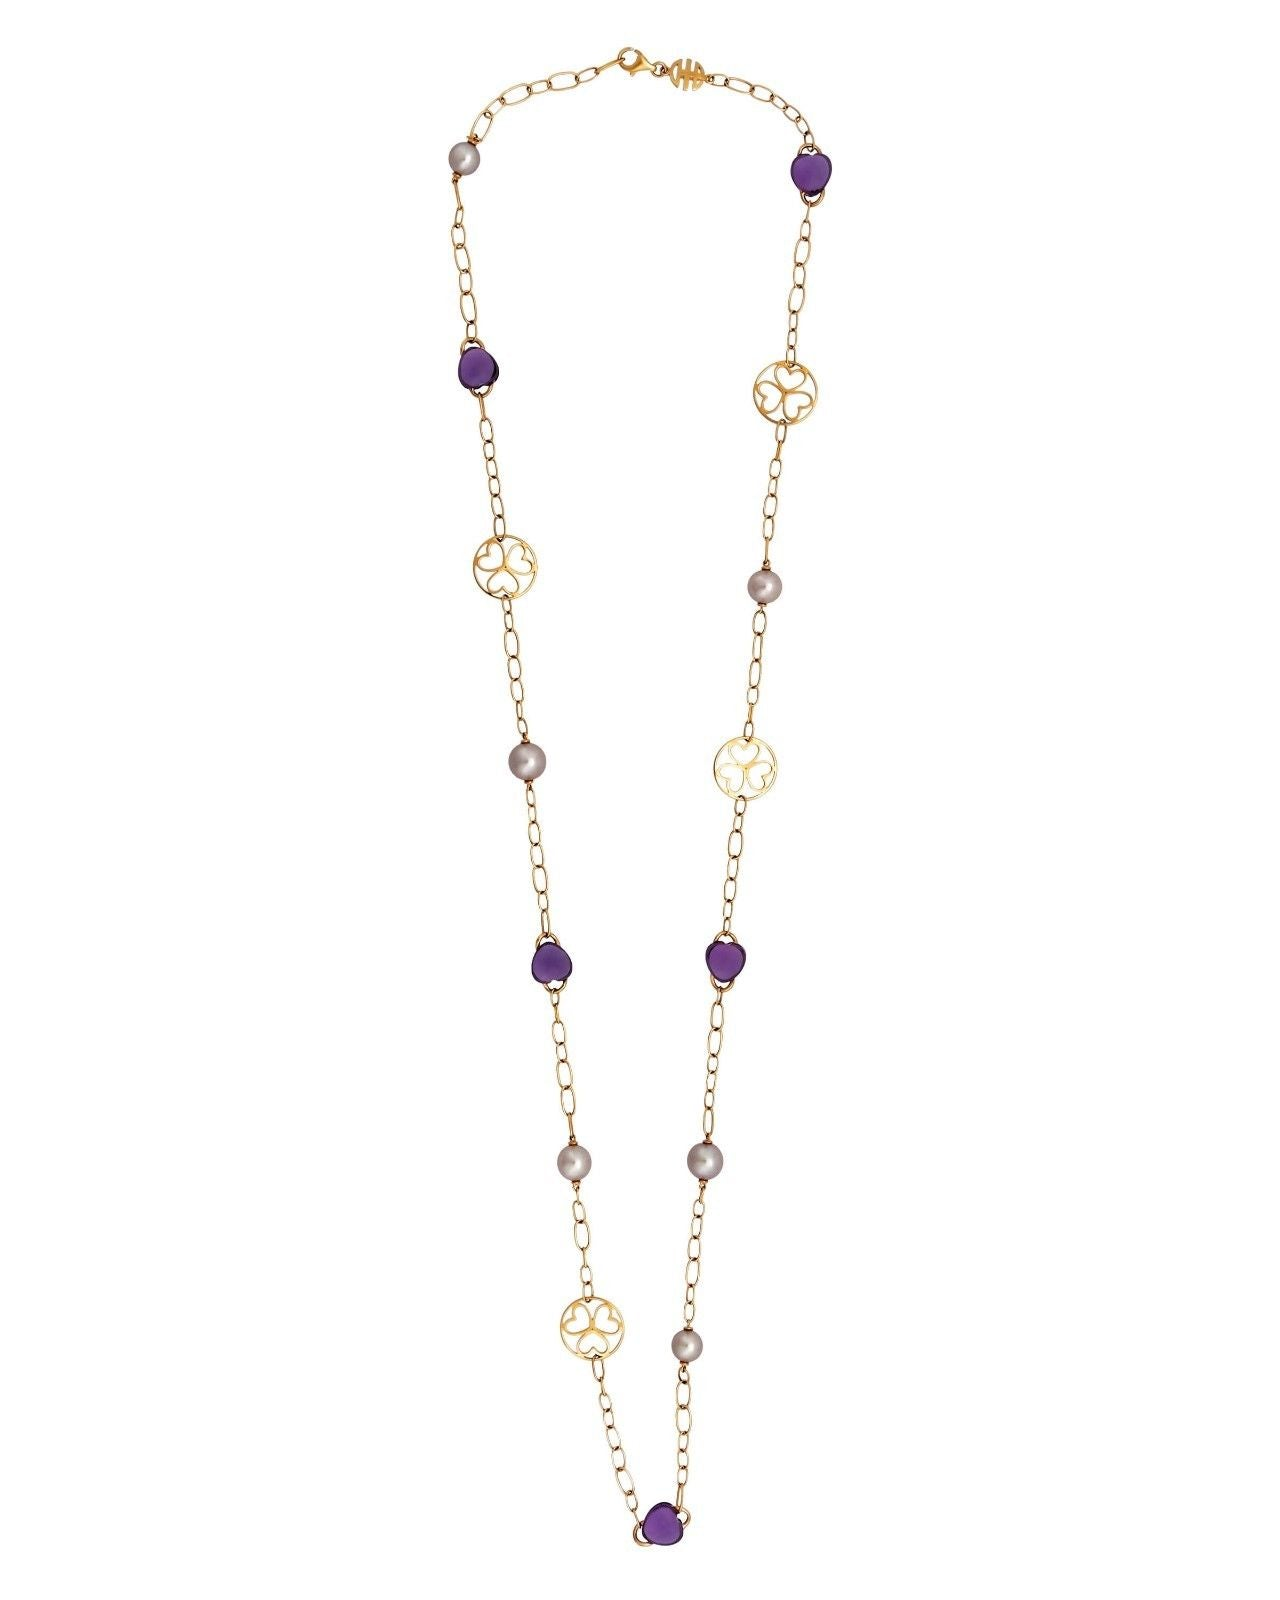 Mimi Milano Necklace In 18K Rose Gold, Amethyst Violet Pearls C287R3A